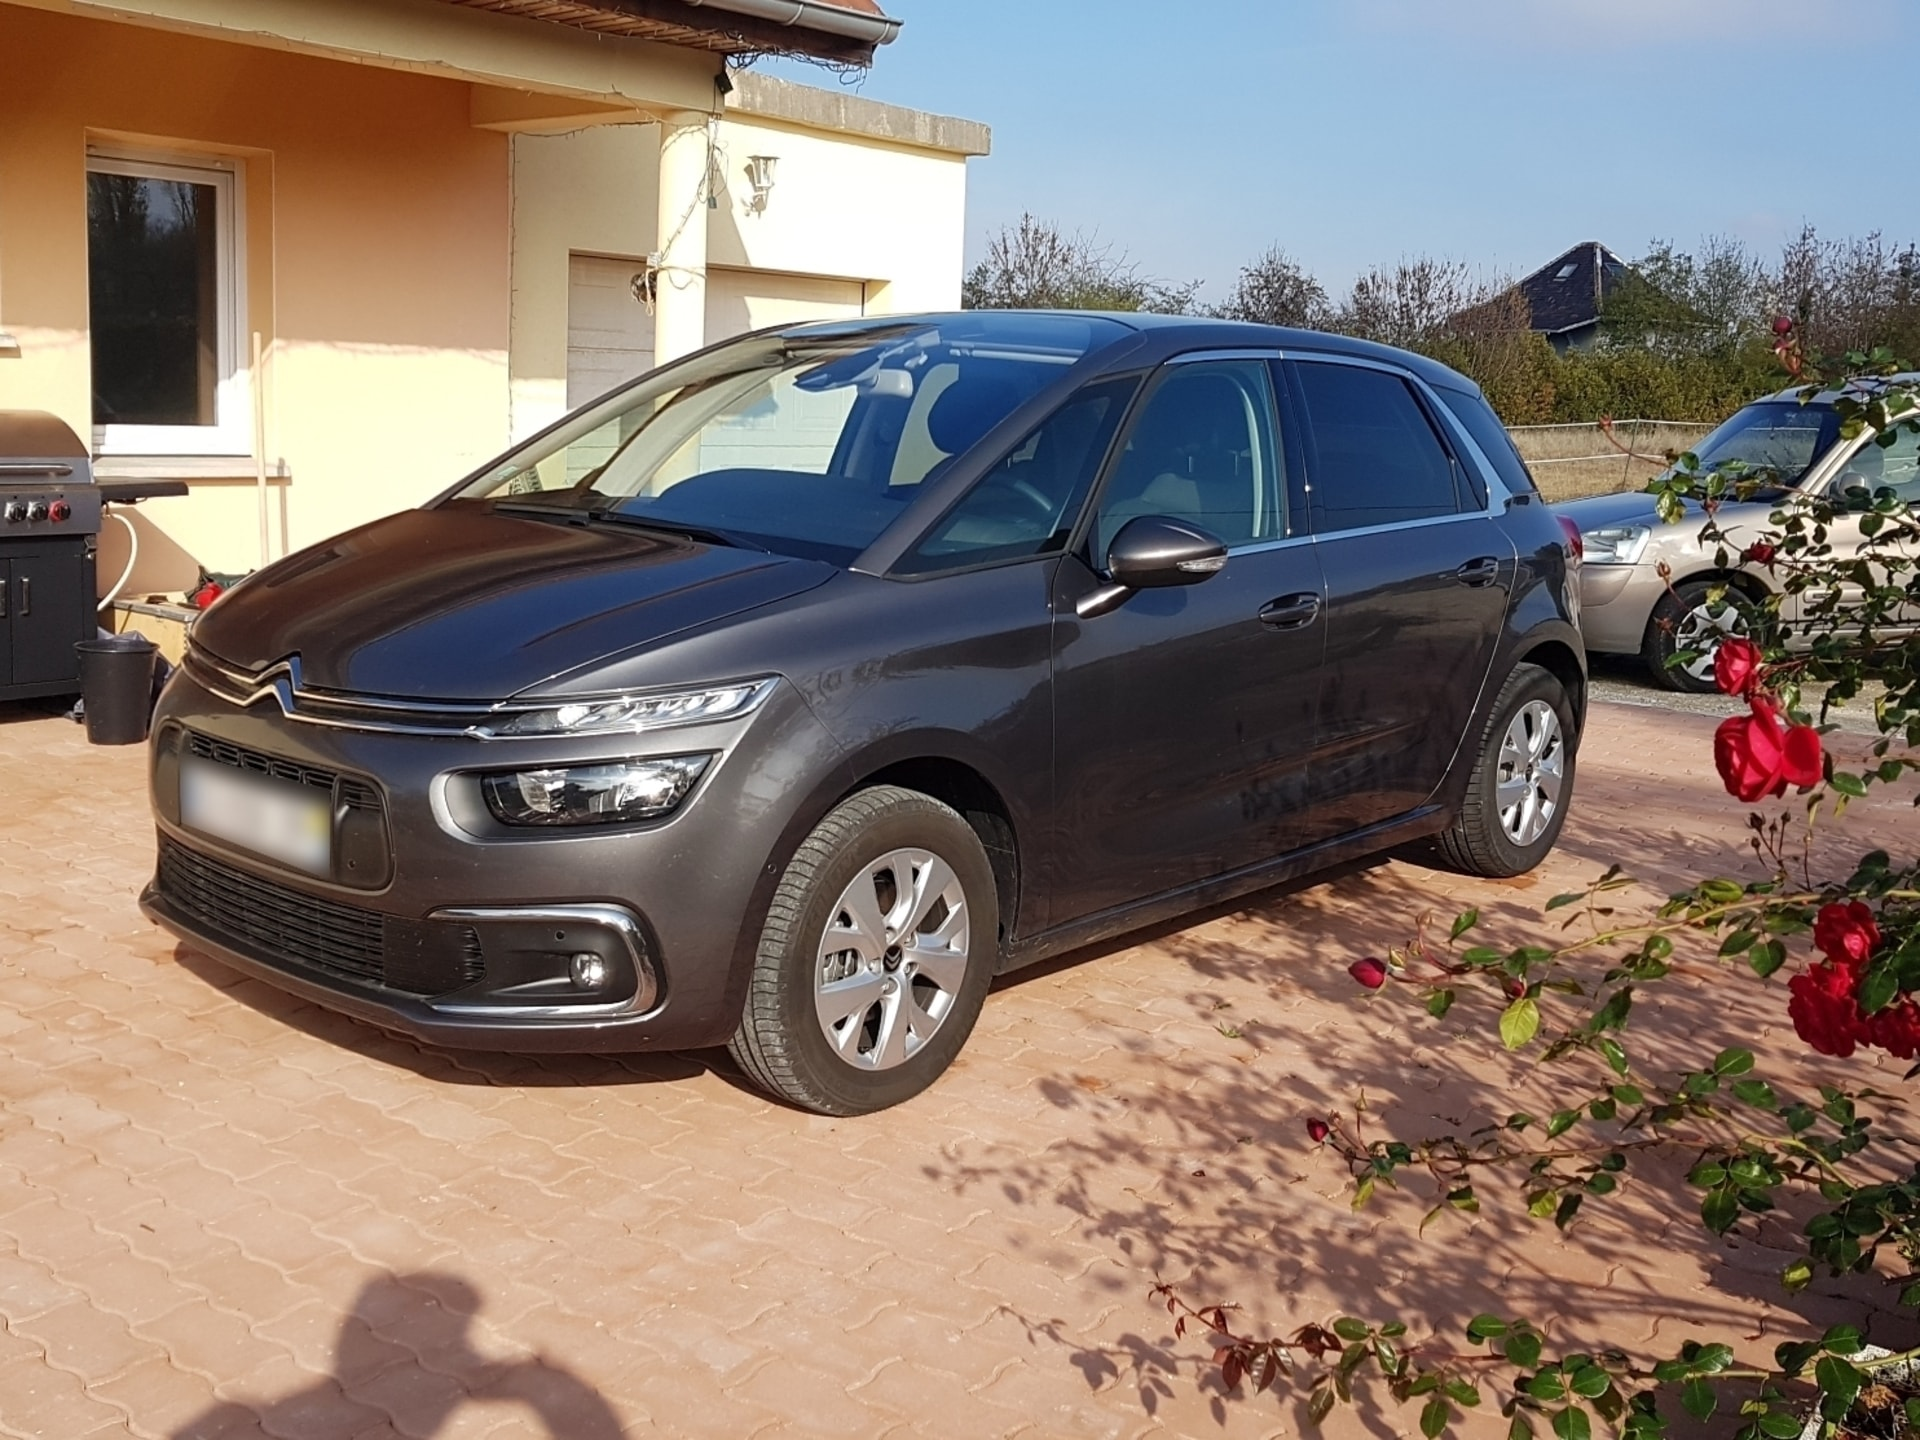 CITROEN C4 PICASSO 1.2 PURETECH 130 FEEL EAT BVA START-STOP - Carverntura